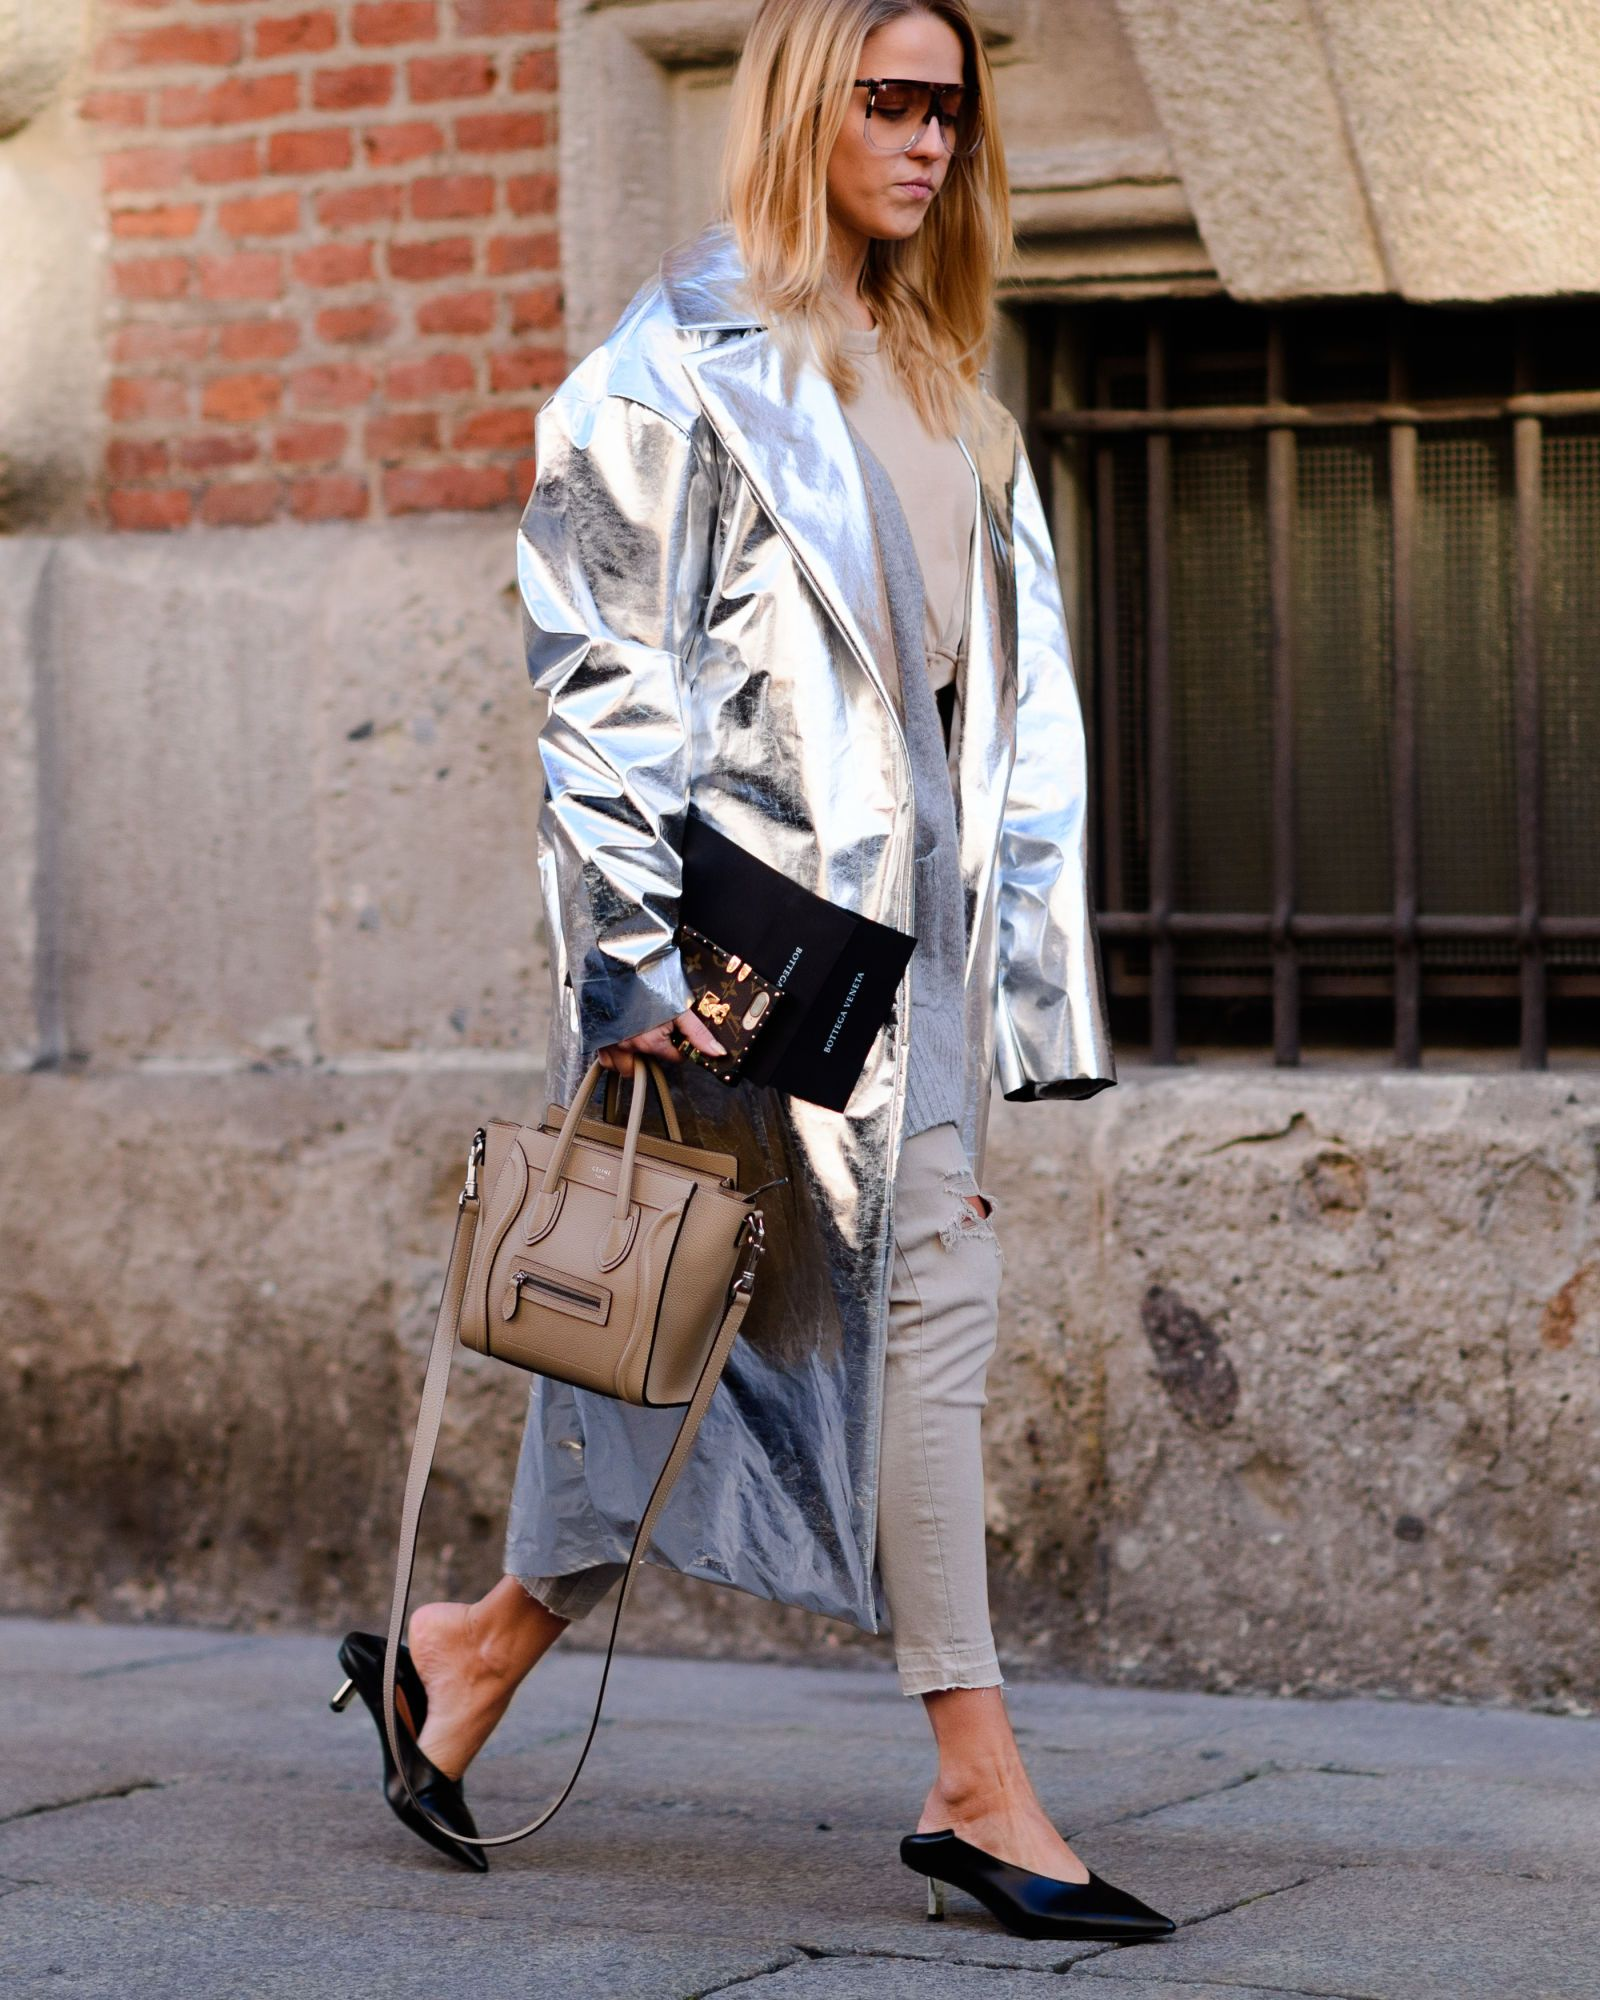 7810c7130e0 The Best Street Style From Milan Fashion Week